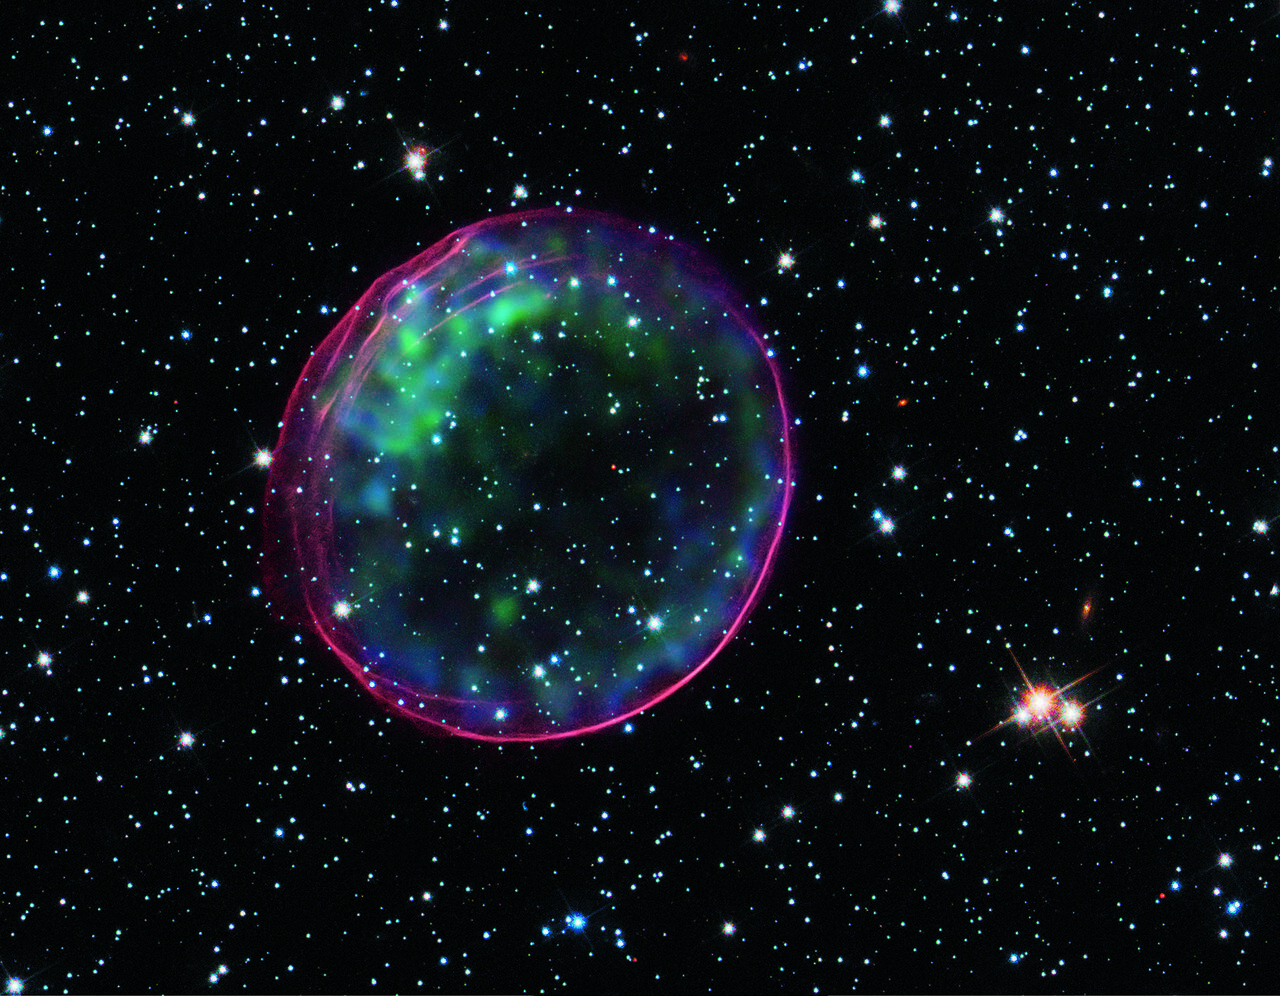 The remnant of a supernova that occurred 160,000 light years from Earth. The stellar explosion would have been visible in the Southern Hemisphere around 1600.